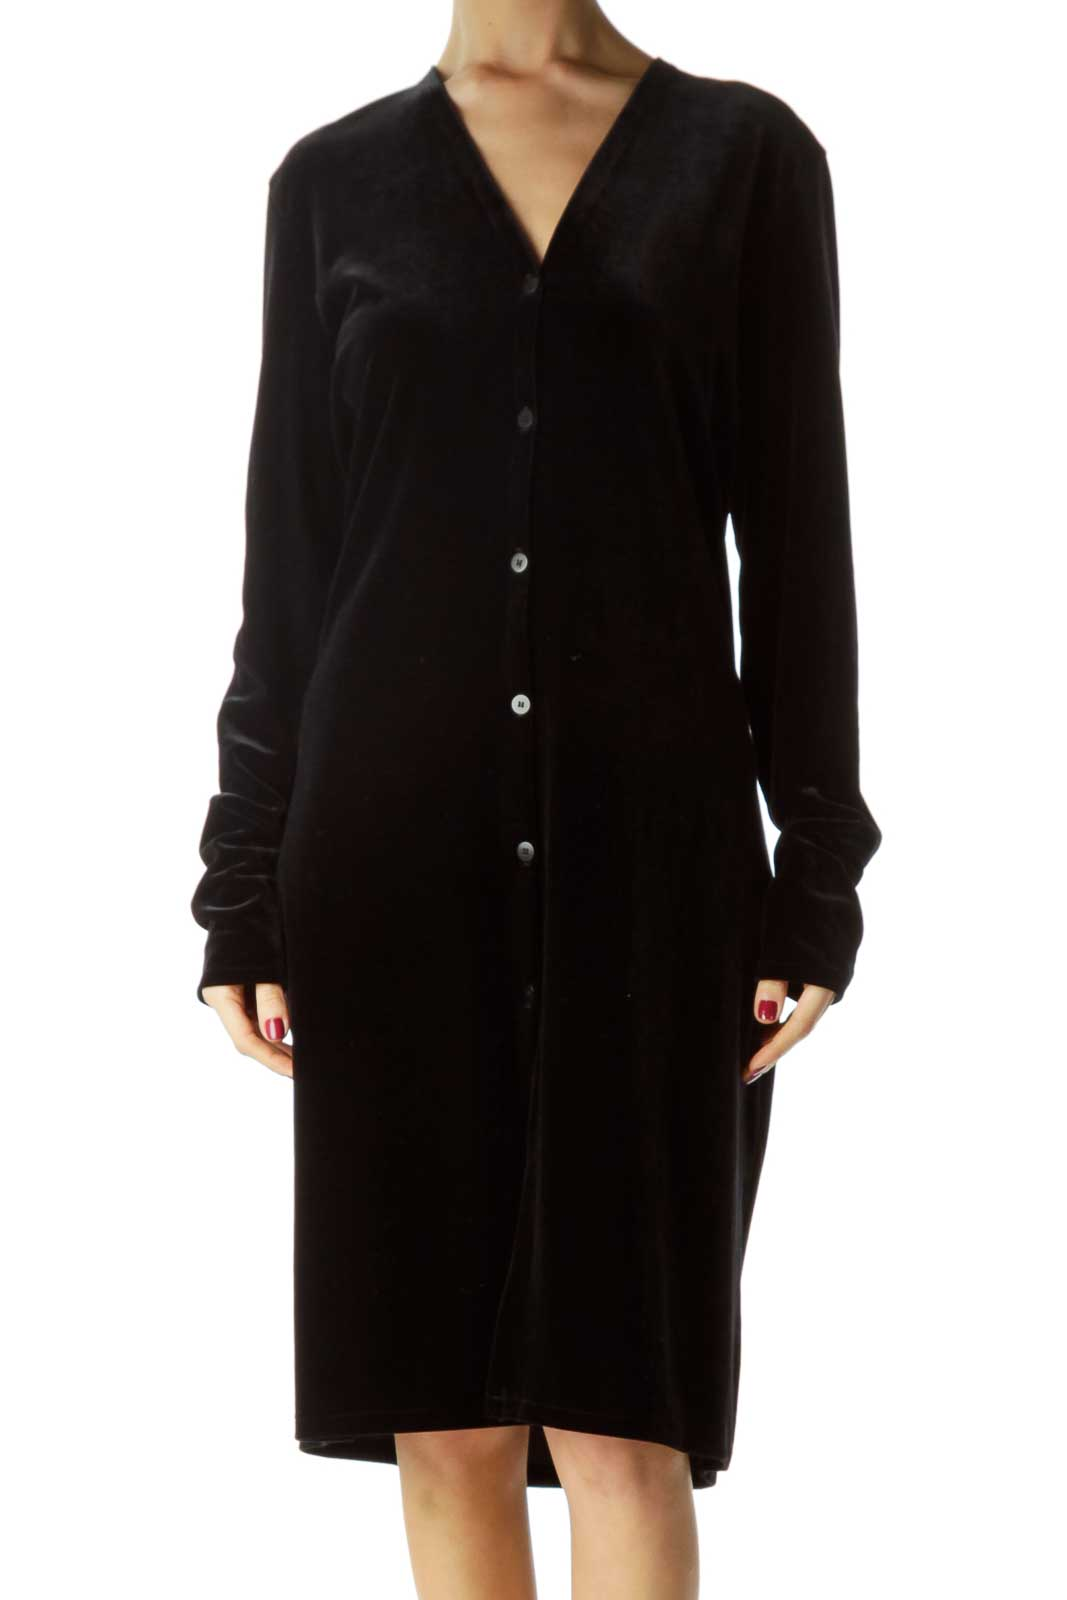 Black Velvet Shirt Dress